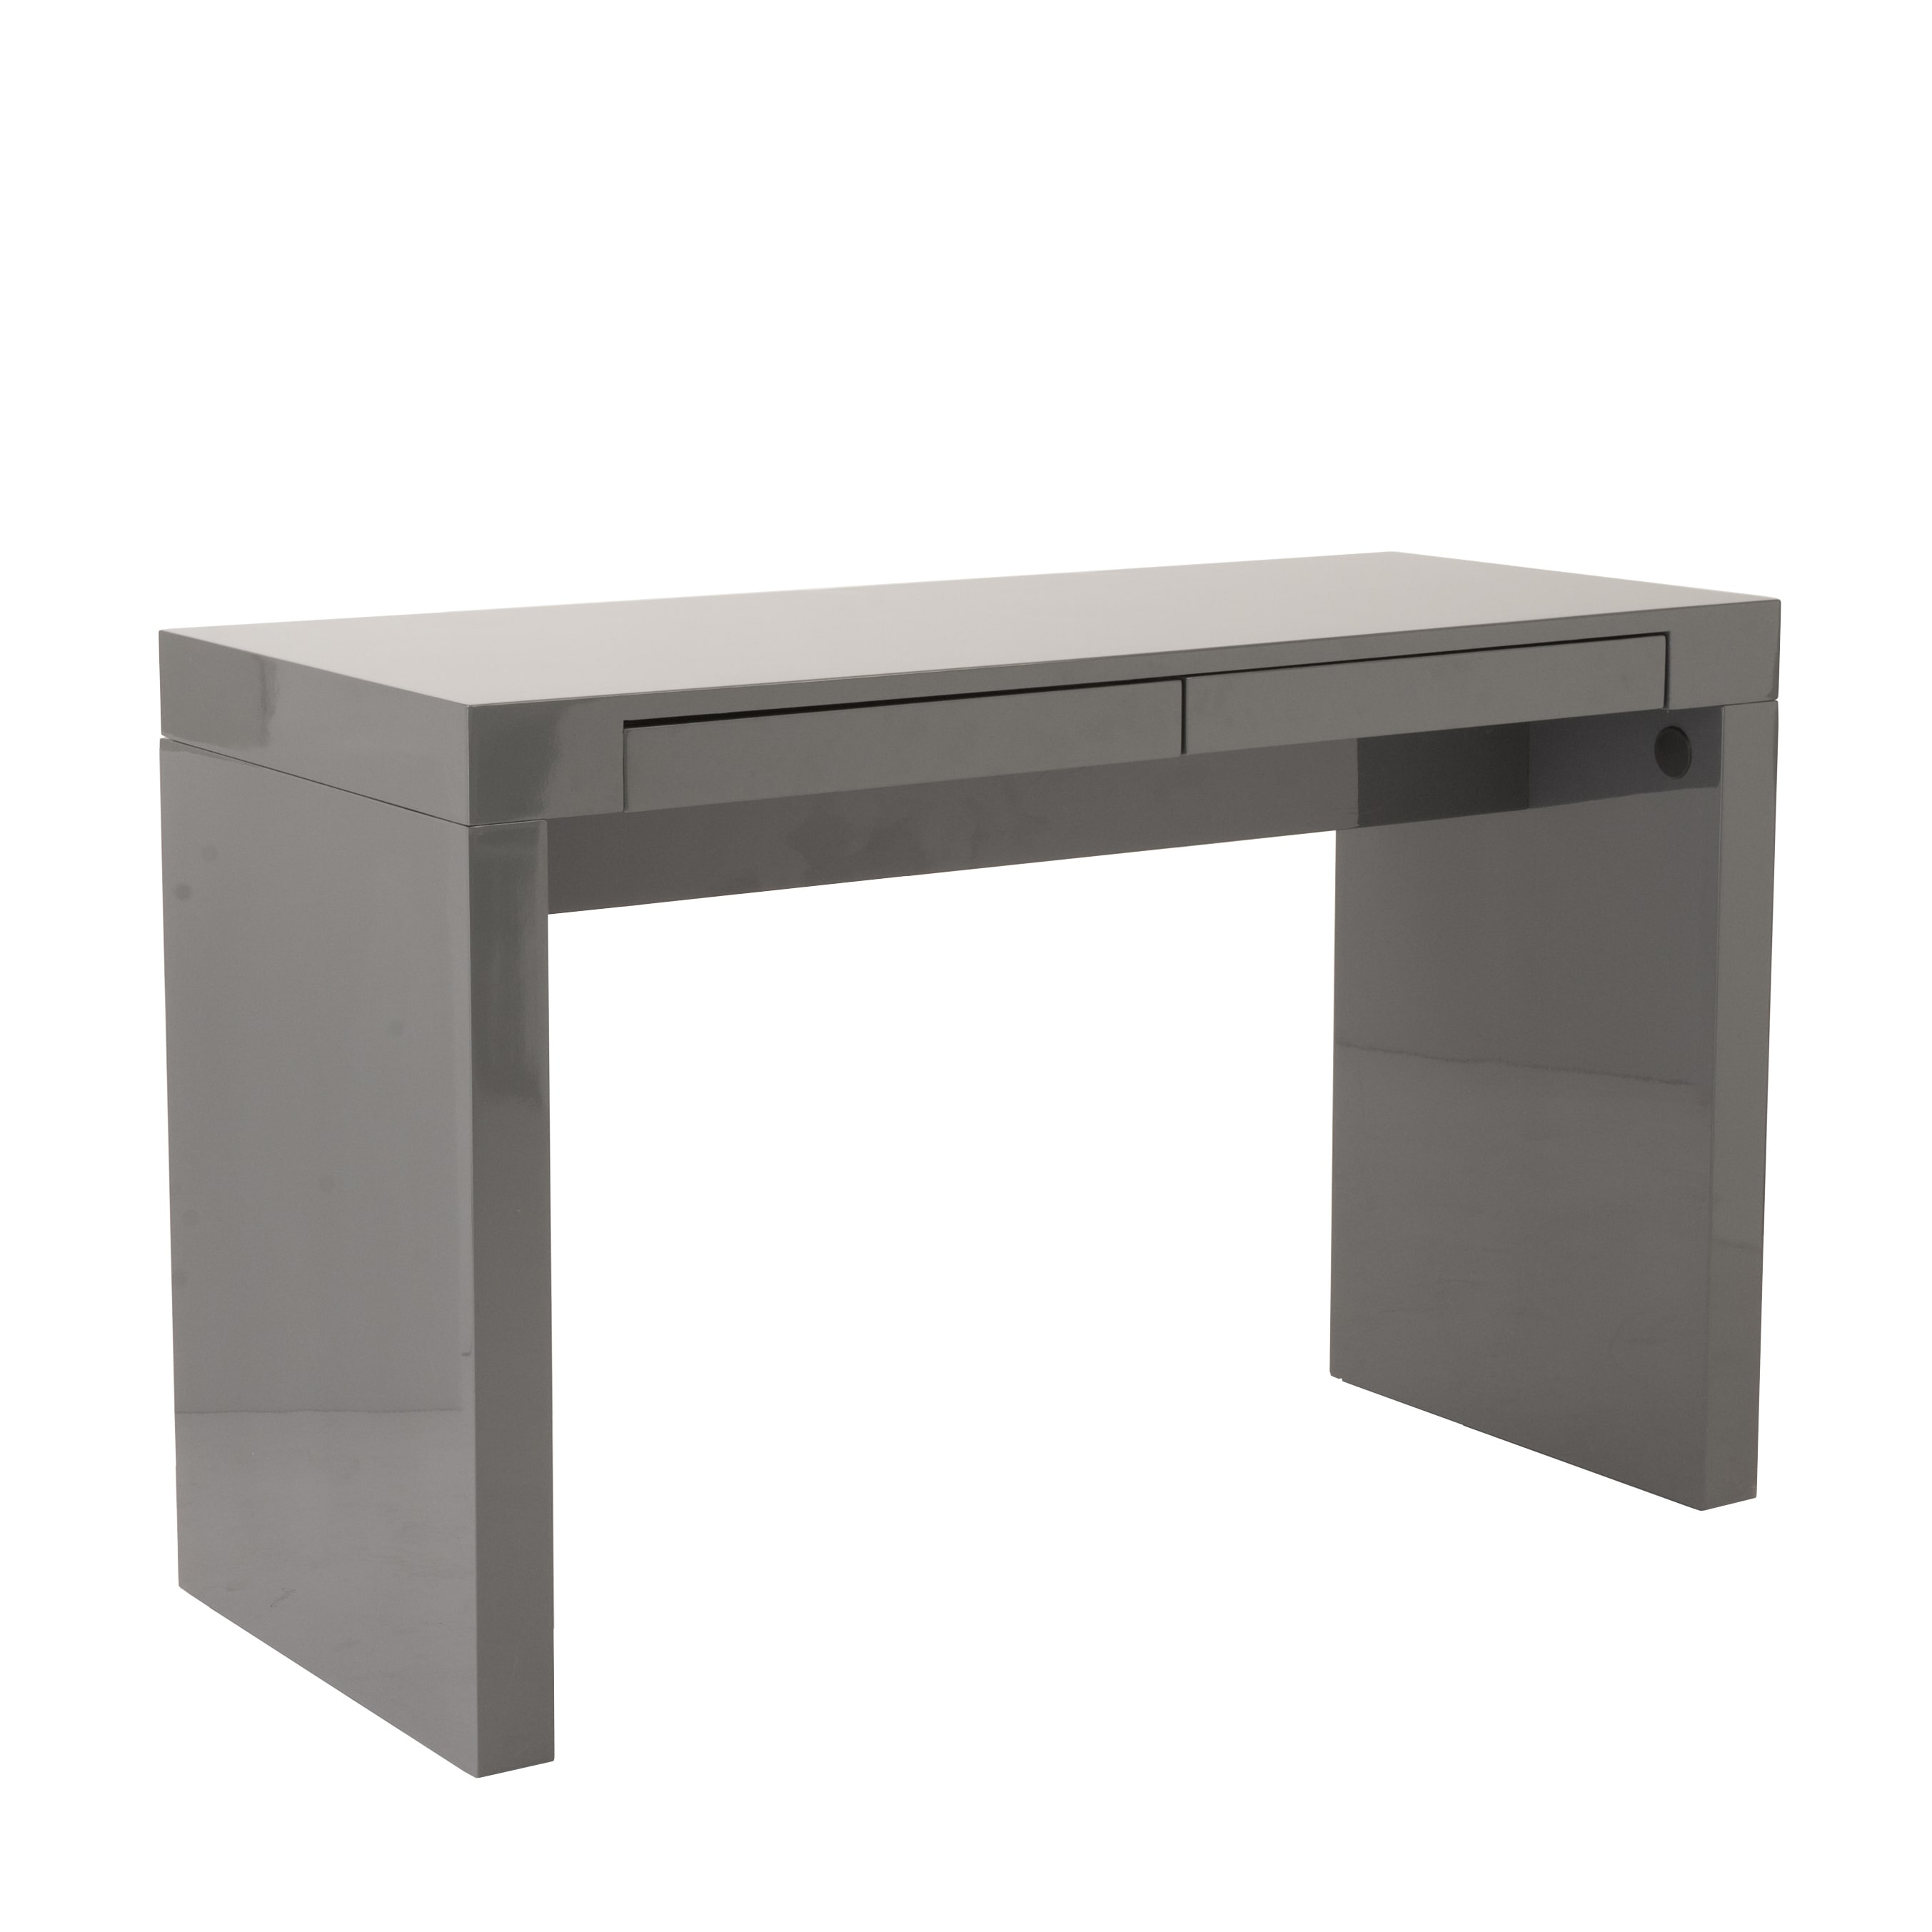 children bed beautiful desk jules bookcases gray by furniture writing petite company the desks s